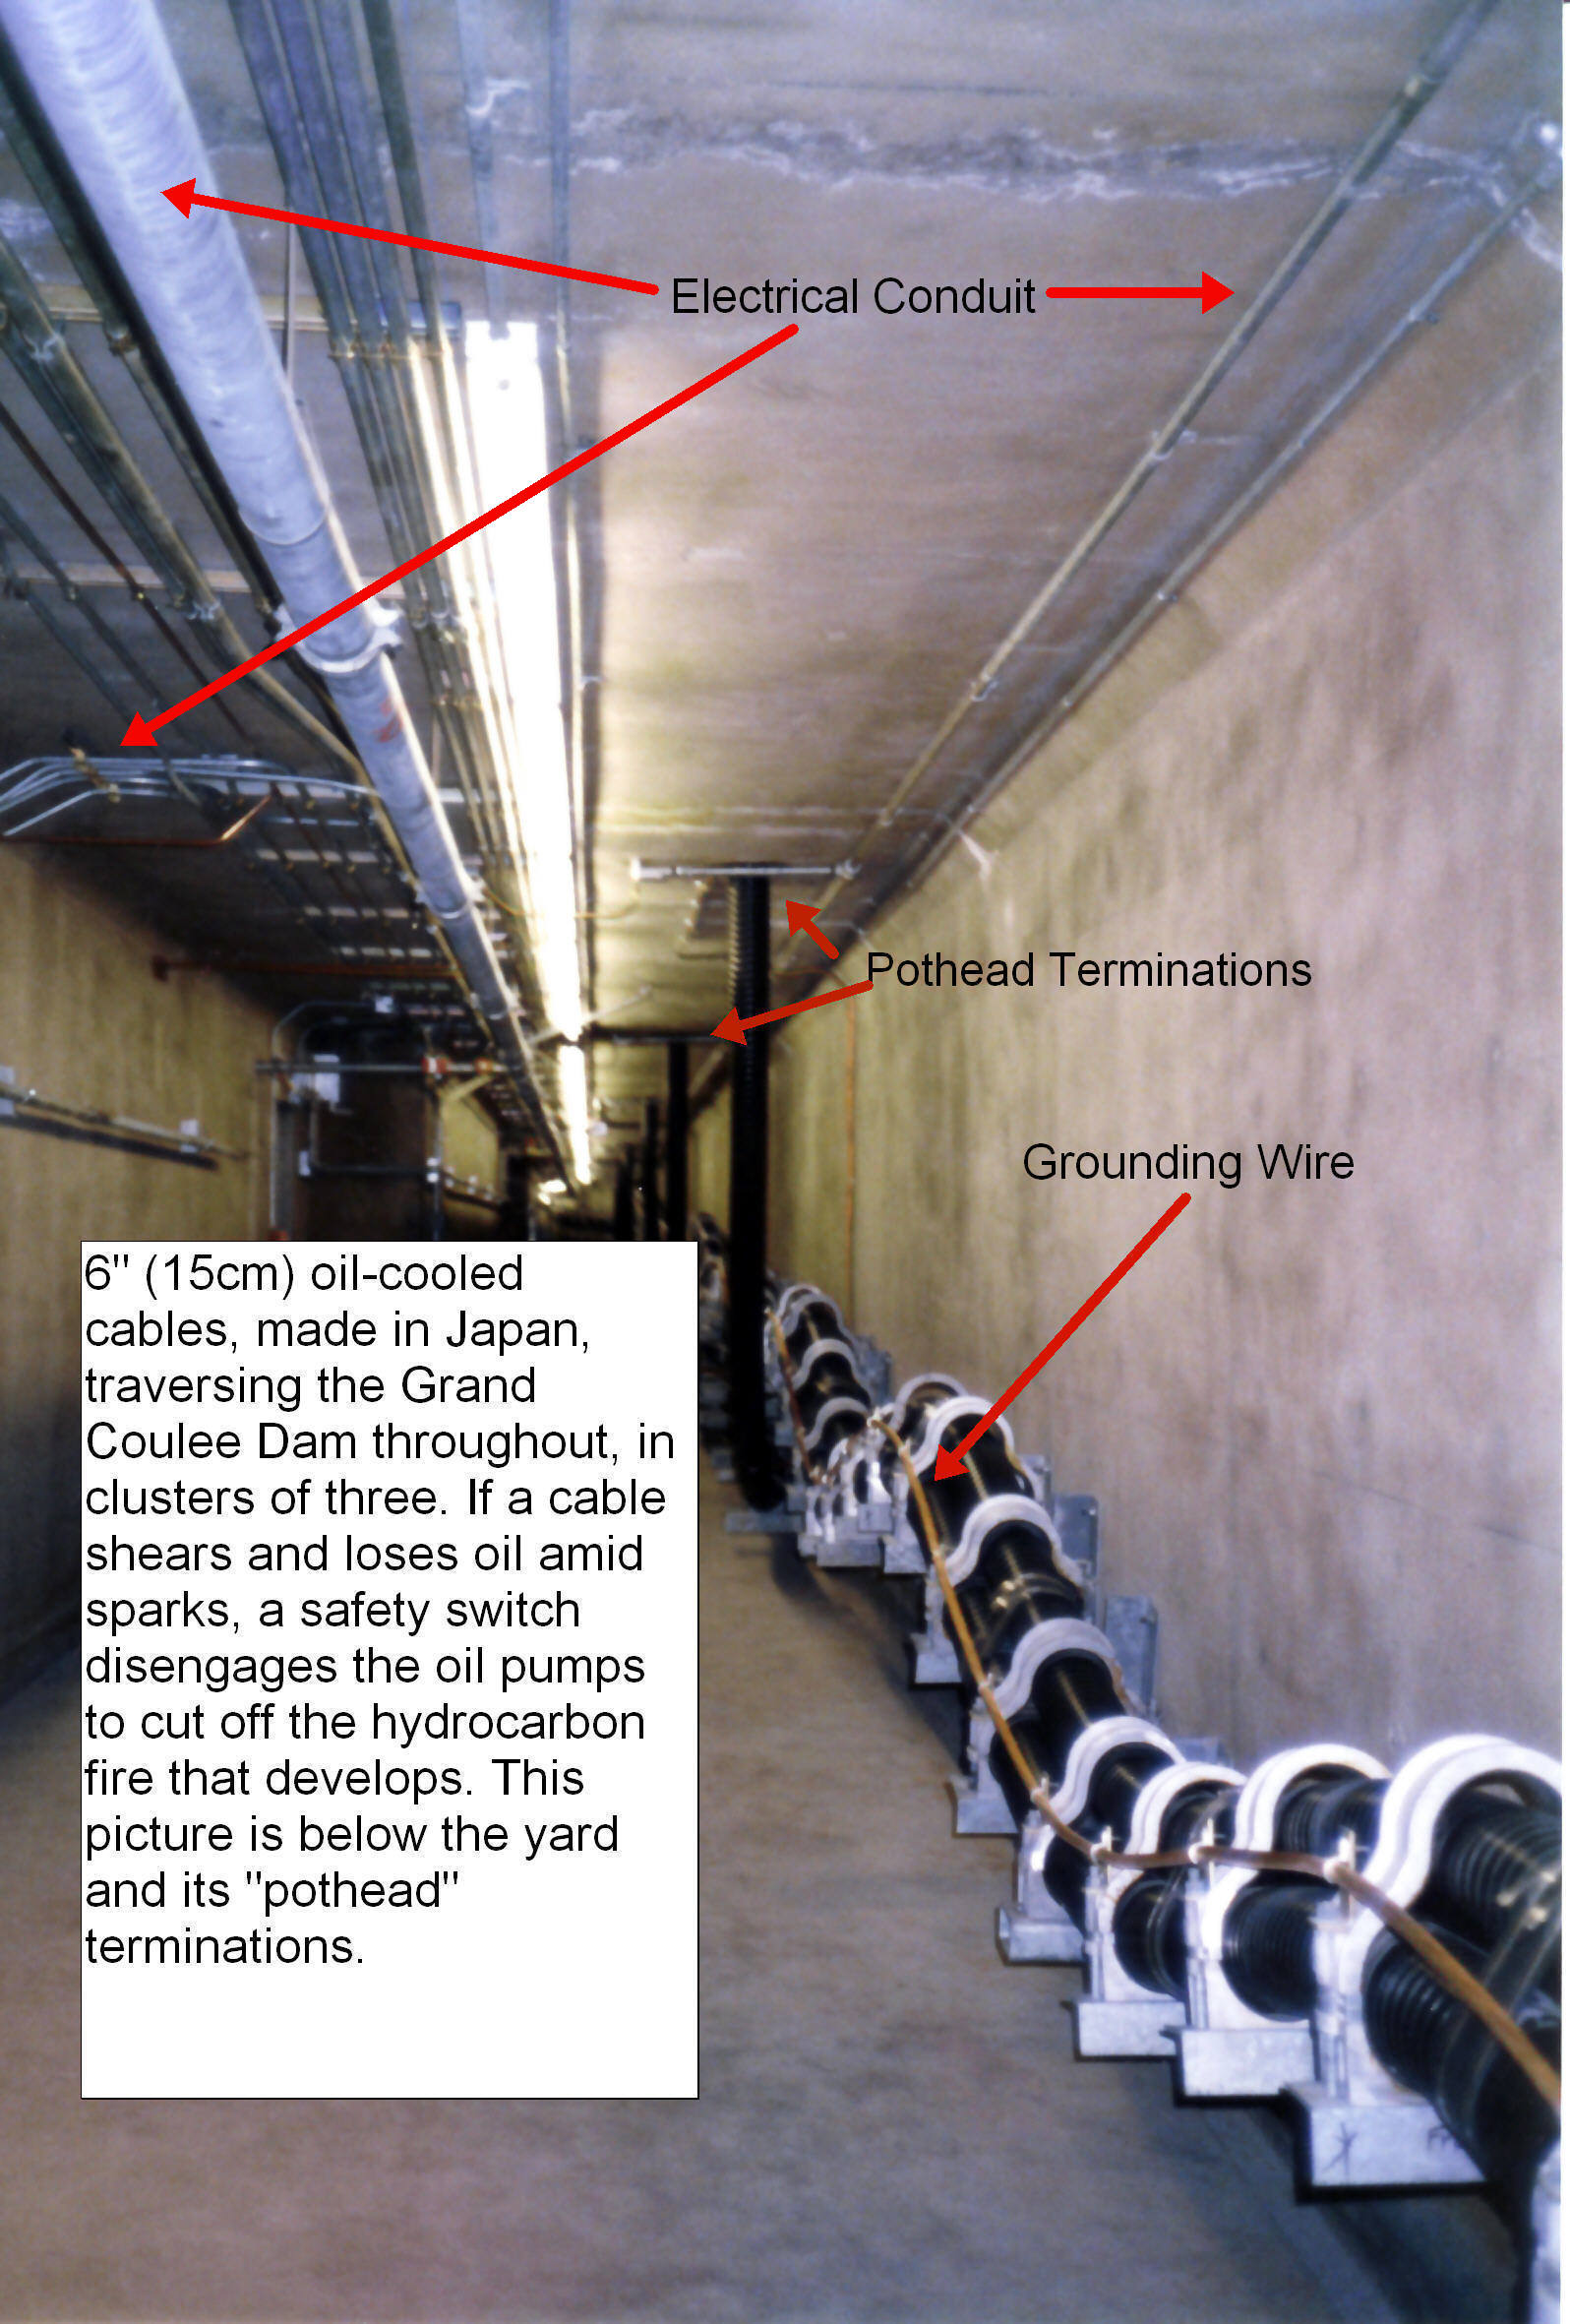 Electrical Cable Wikiwand Conduit For Safe Wiring Explained By An